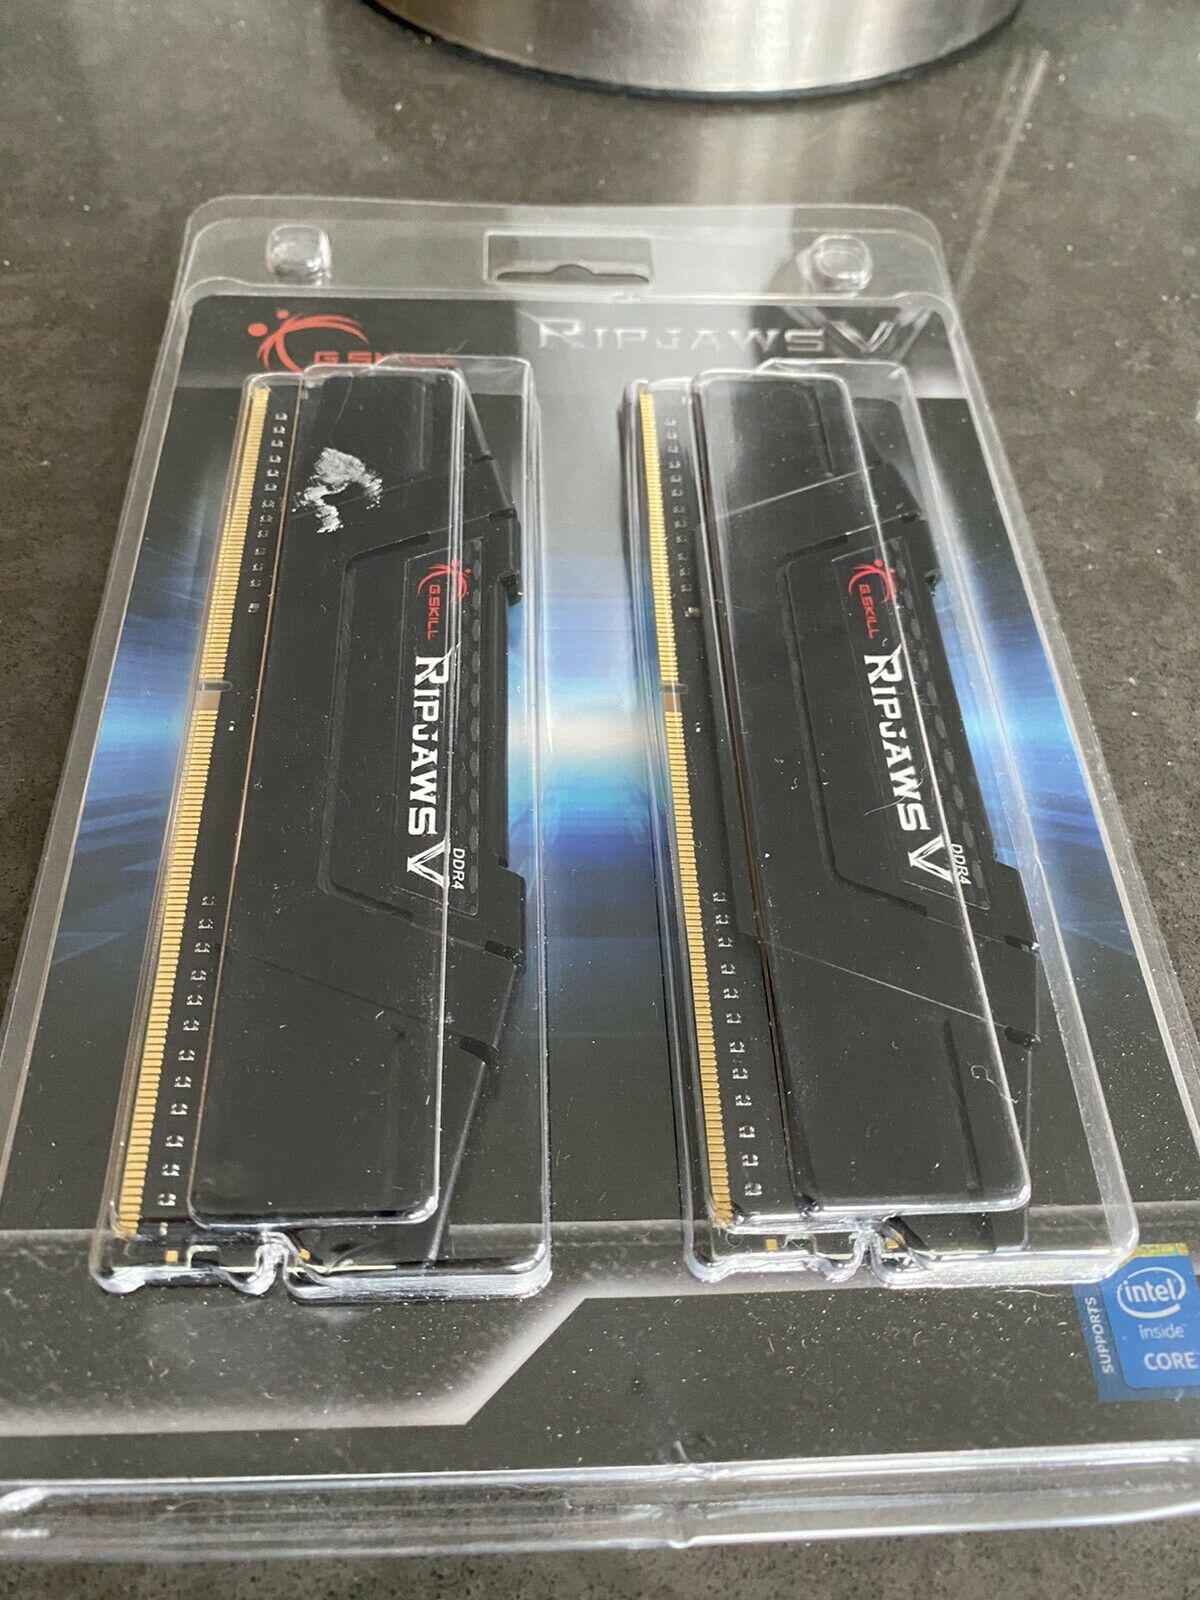 New G.Skill Ripjaws V Series 16GB (8GBx2) DDR4 PC4-25600 3200MHz - CL3048. Buy it now for 60.00